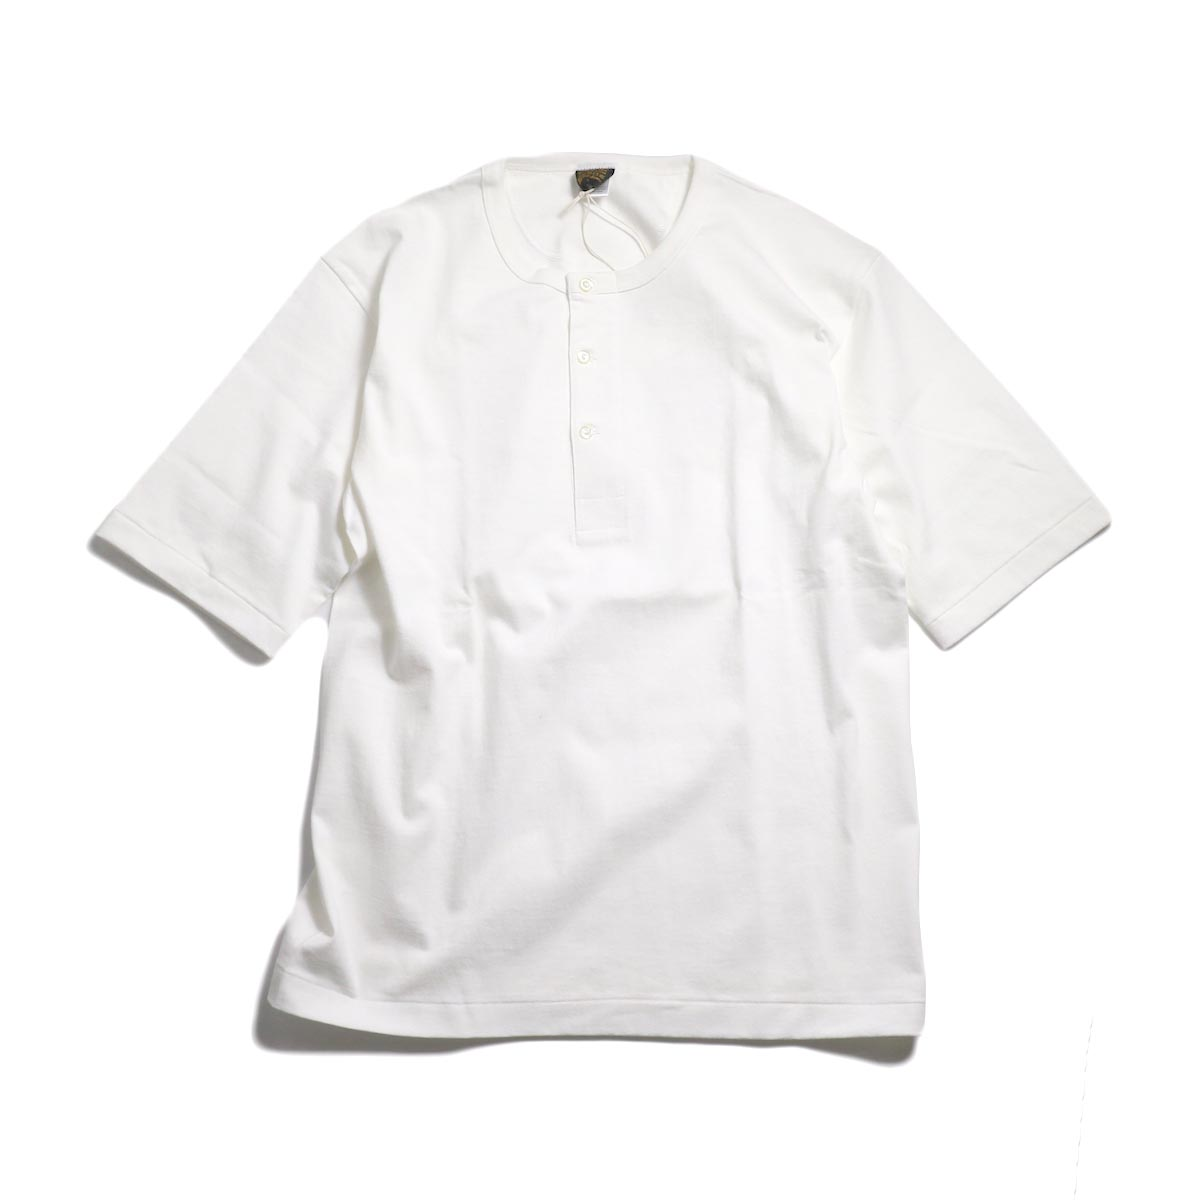 A VONTADE / 1/2 Sleeve Classic Henly Shirts -White 正面